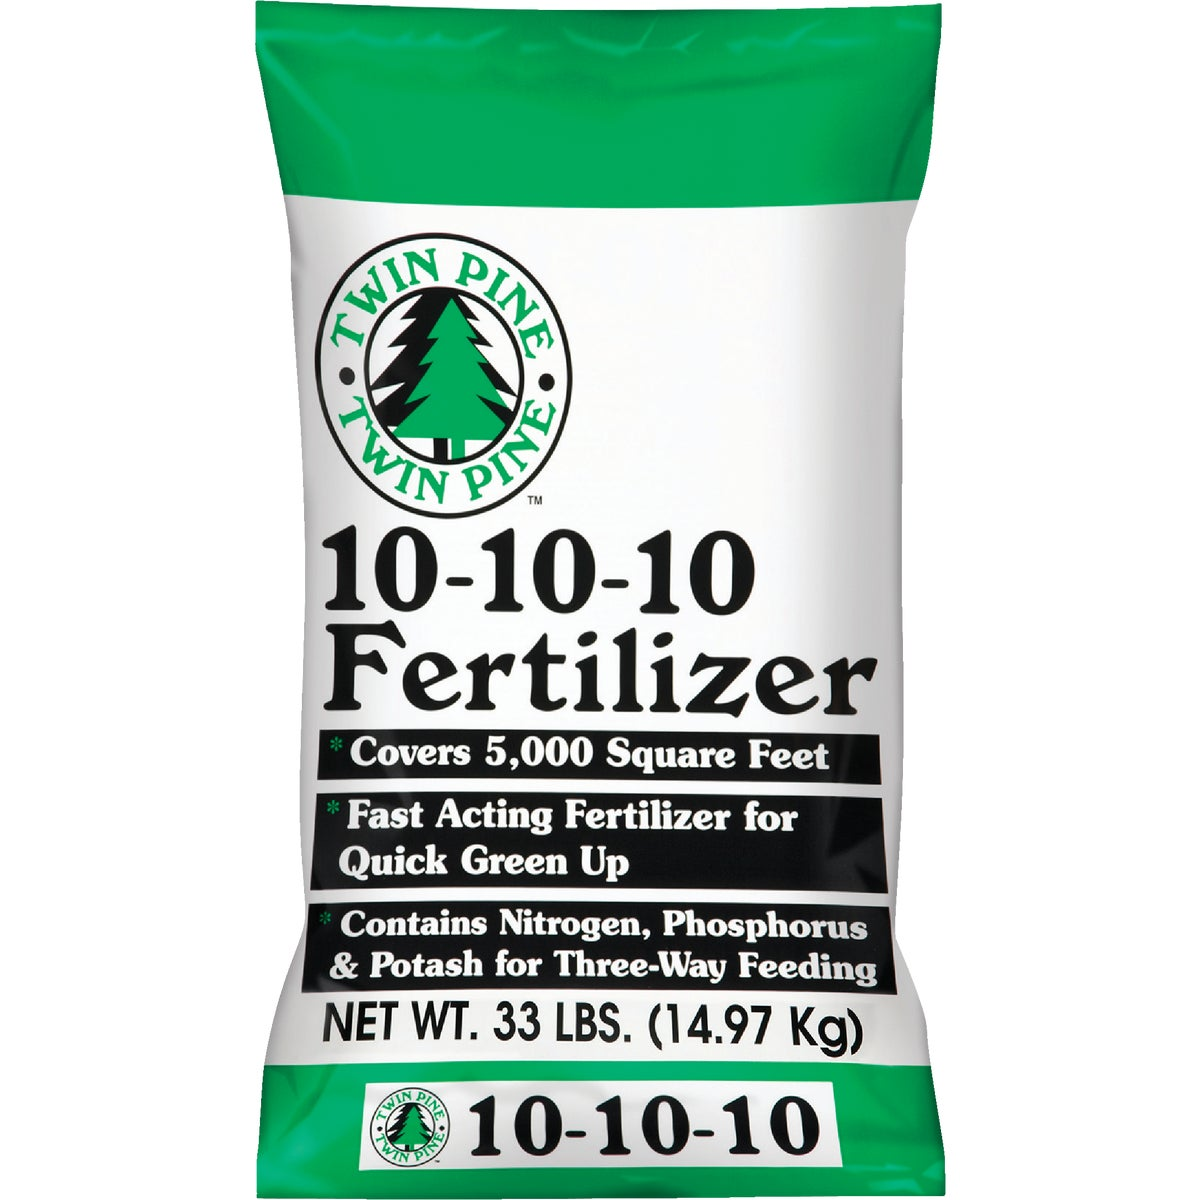 Andersons 40LB 10-10-10 FERTILIZER AGR104